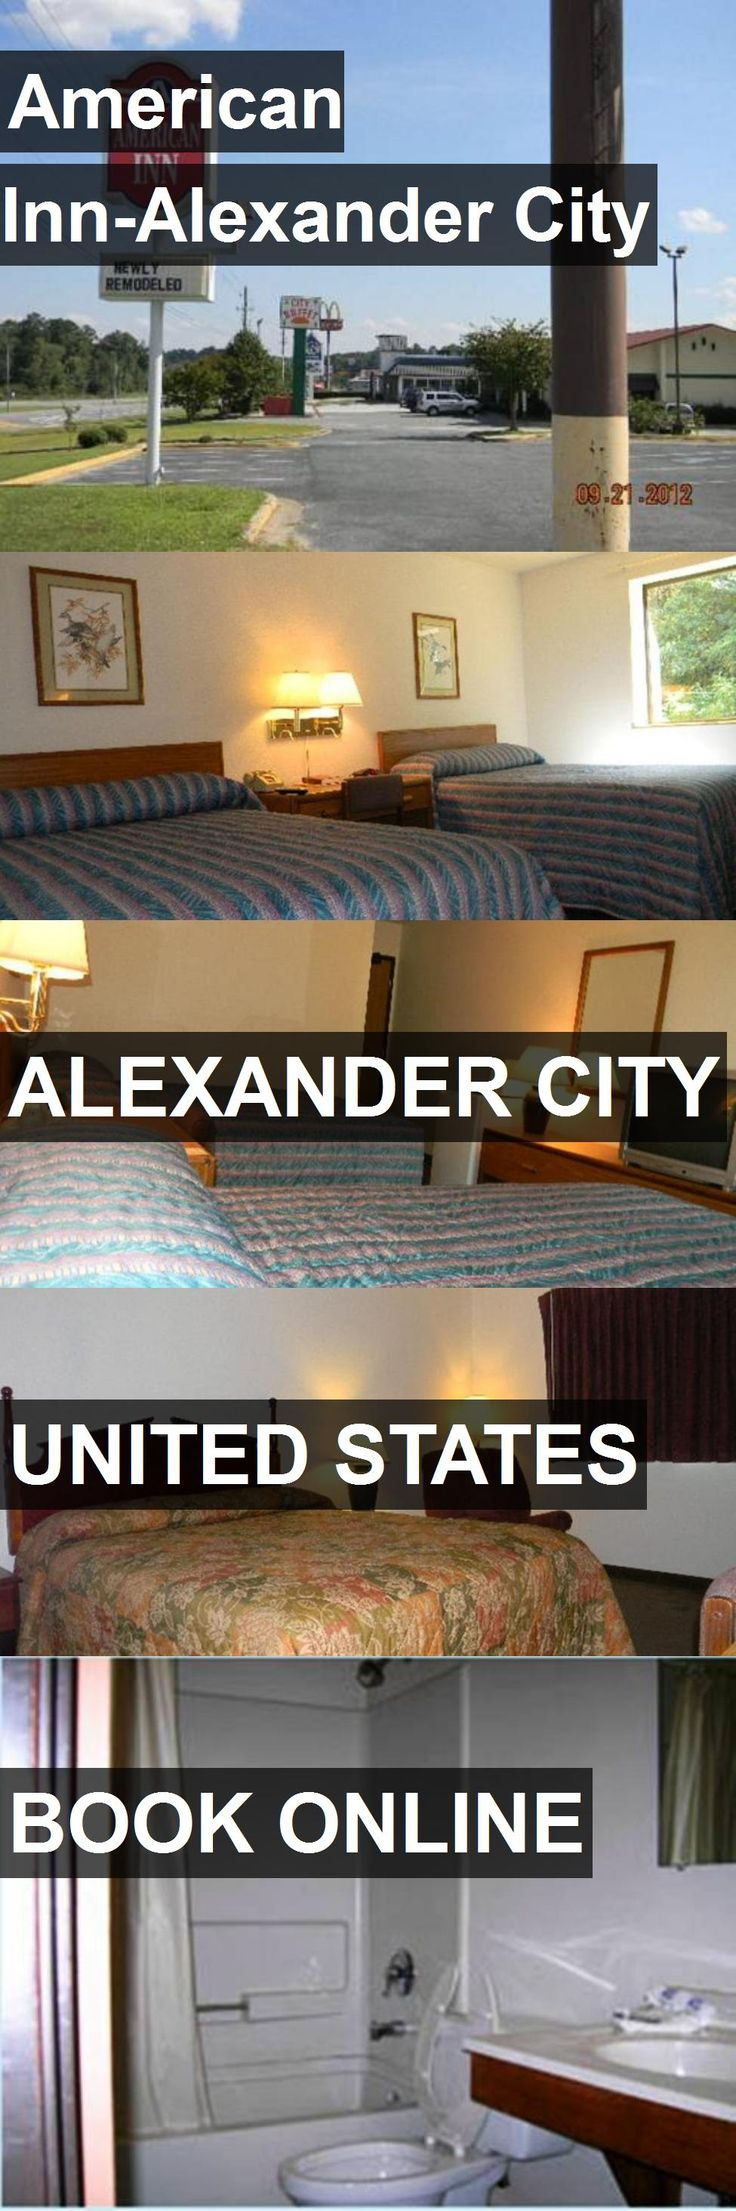 Hotel American Inn-Alexander City in Alexander City, United States. For more information, photos, reviews and best prices please follow the link. #UnitedStates #AlexanderCity #hotel #travel #vacation